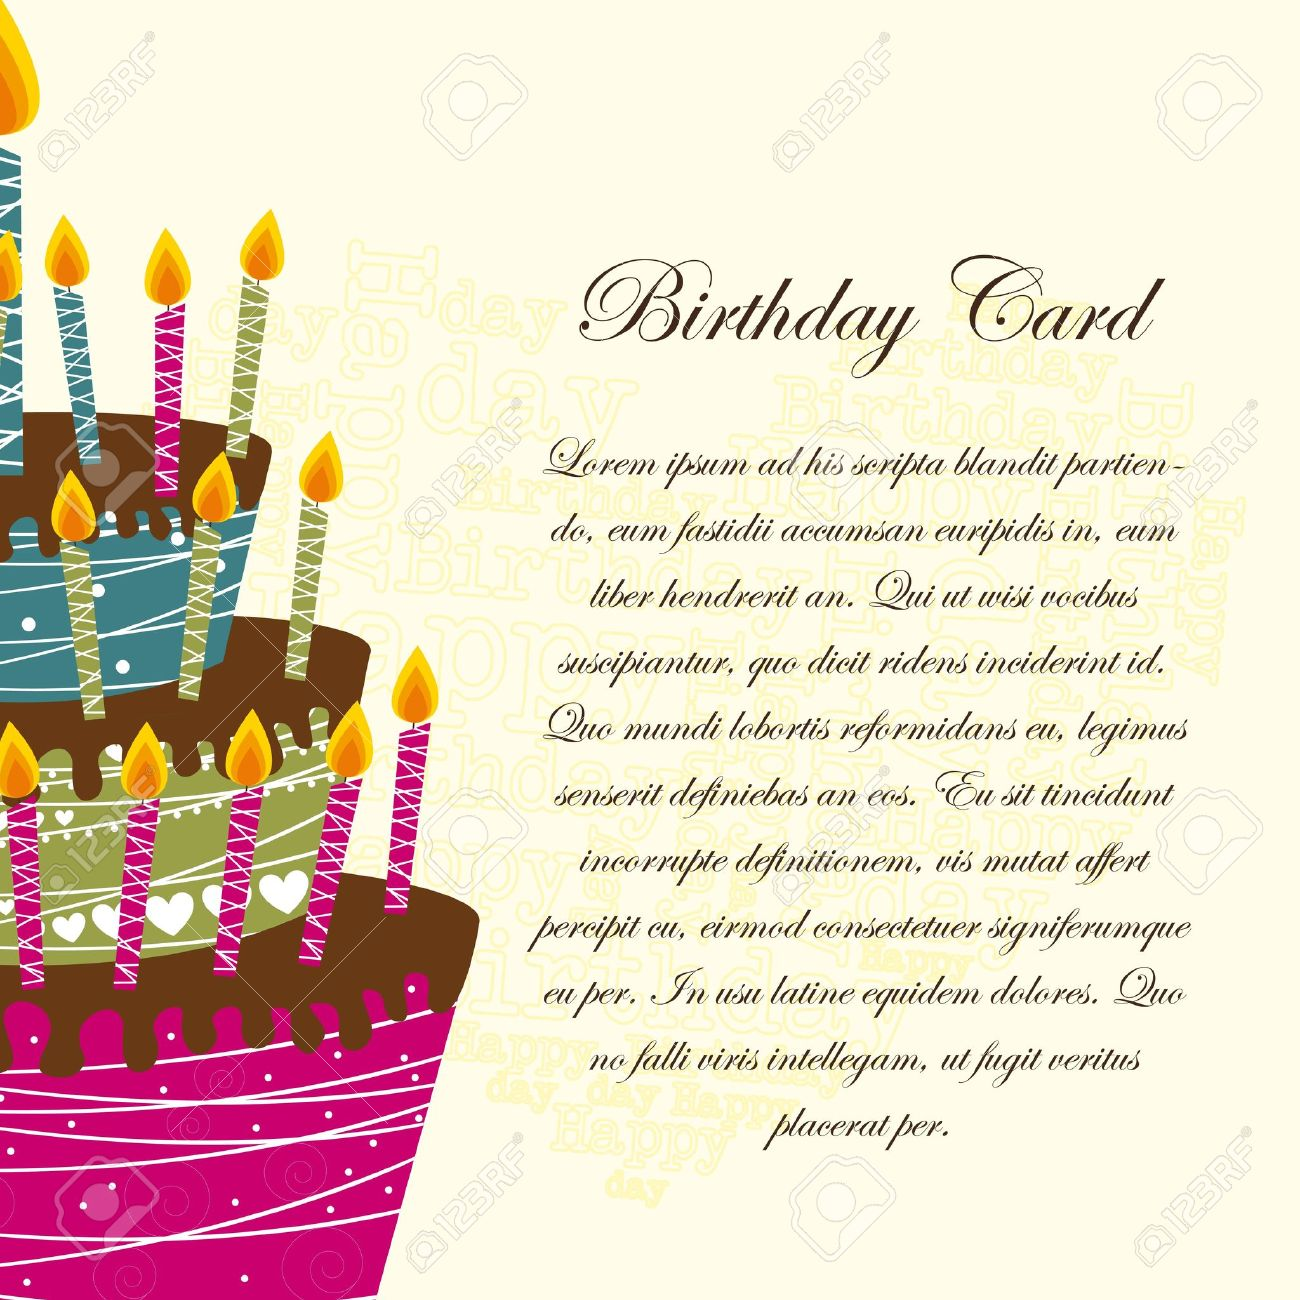 Birthday Card With Cake Over Beige Background. Royalty Free Cliparts ...